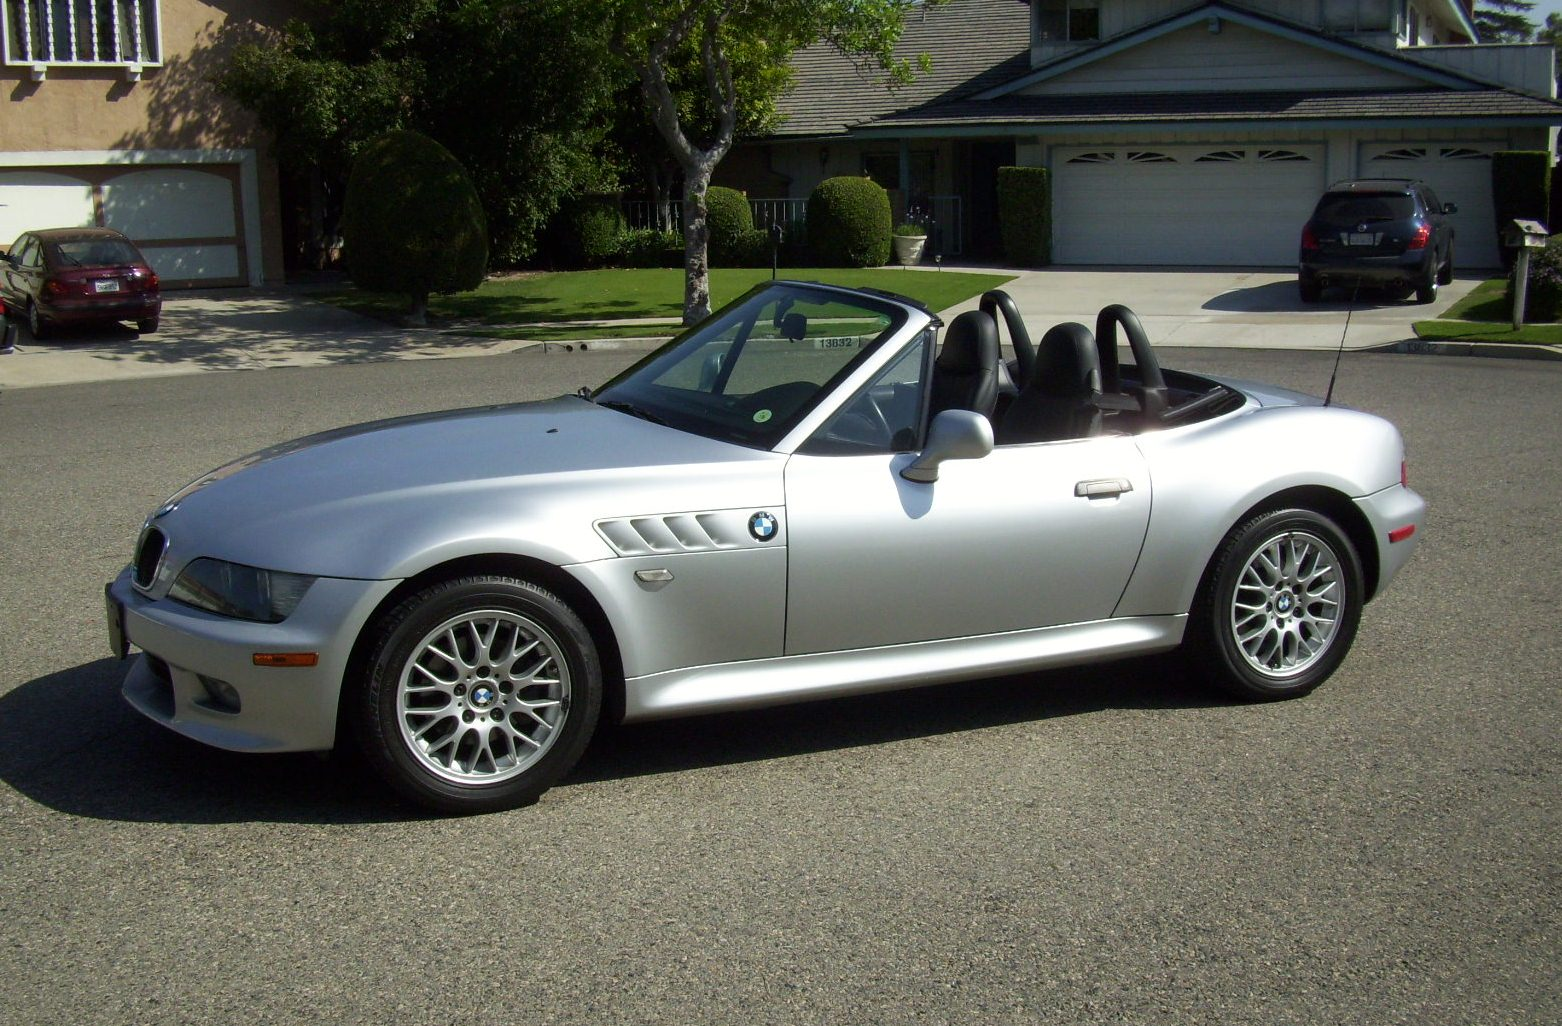 BMW Z3 Convertible Silver 8 Cylinder Auto Trader Classics HD Wallpaper Free Download Image Of